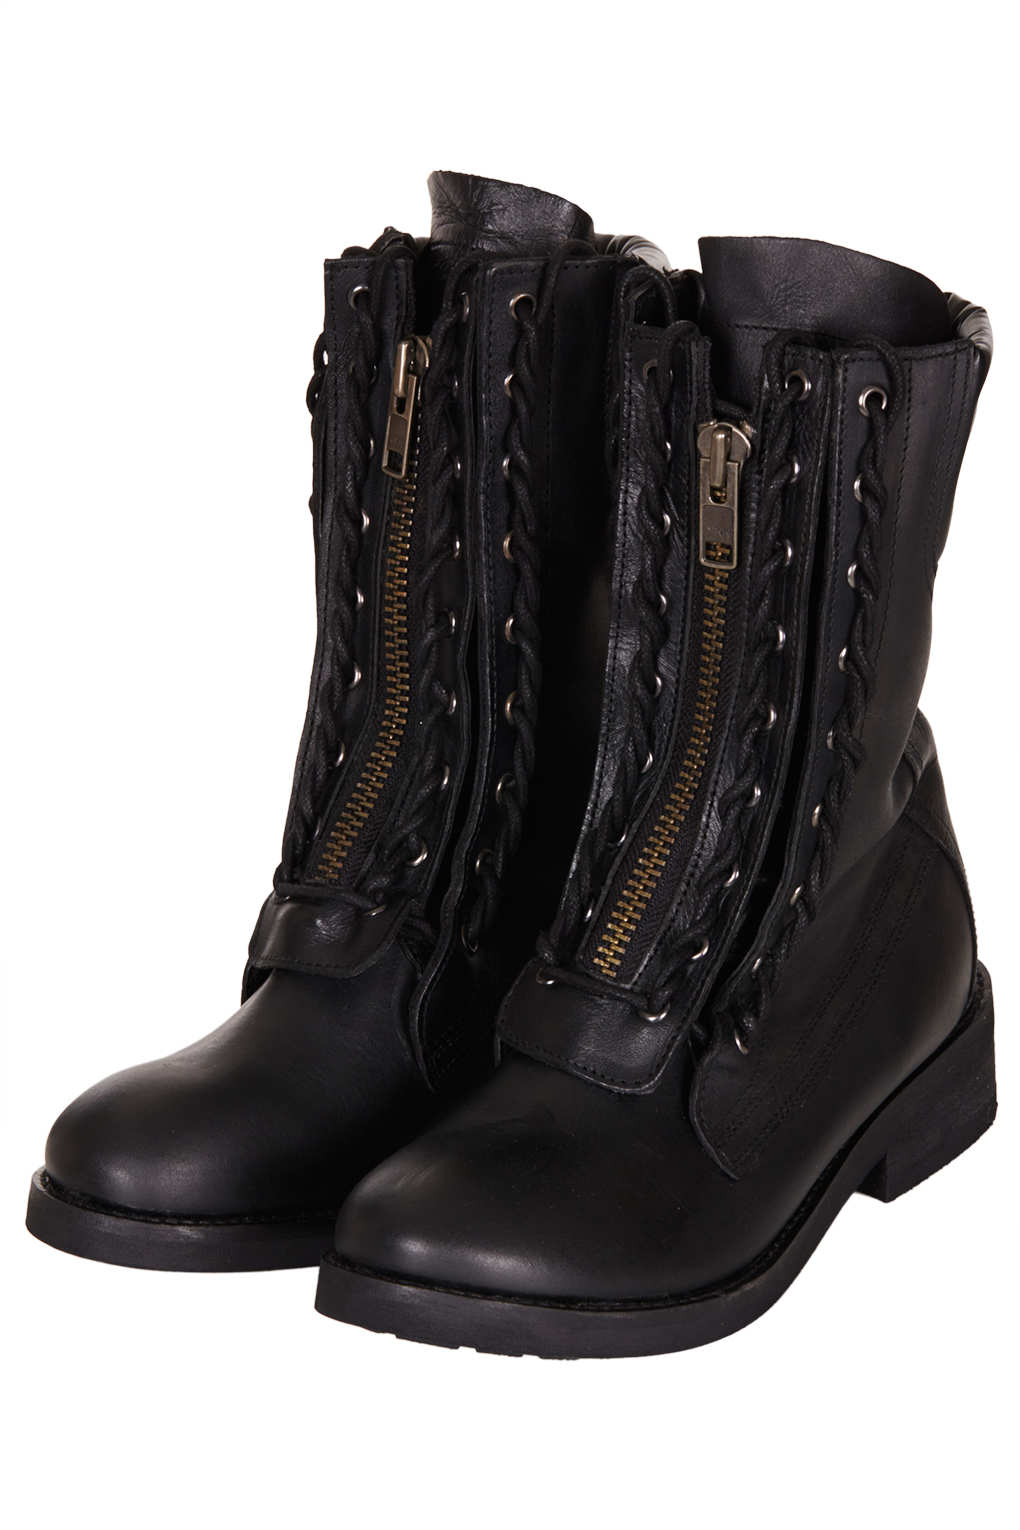 Topshop Ask Lace Up Biker Boots In Black - Lyst-3127